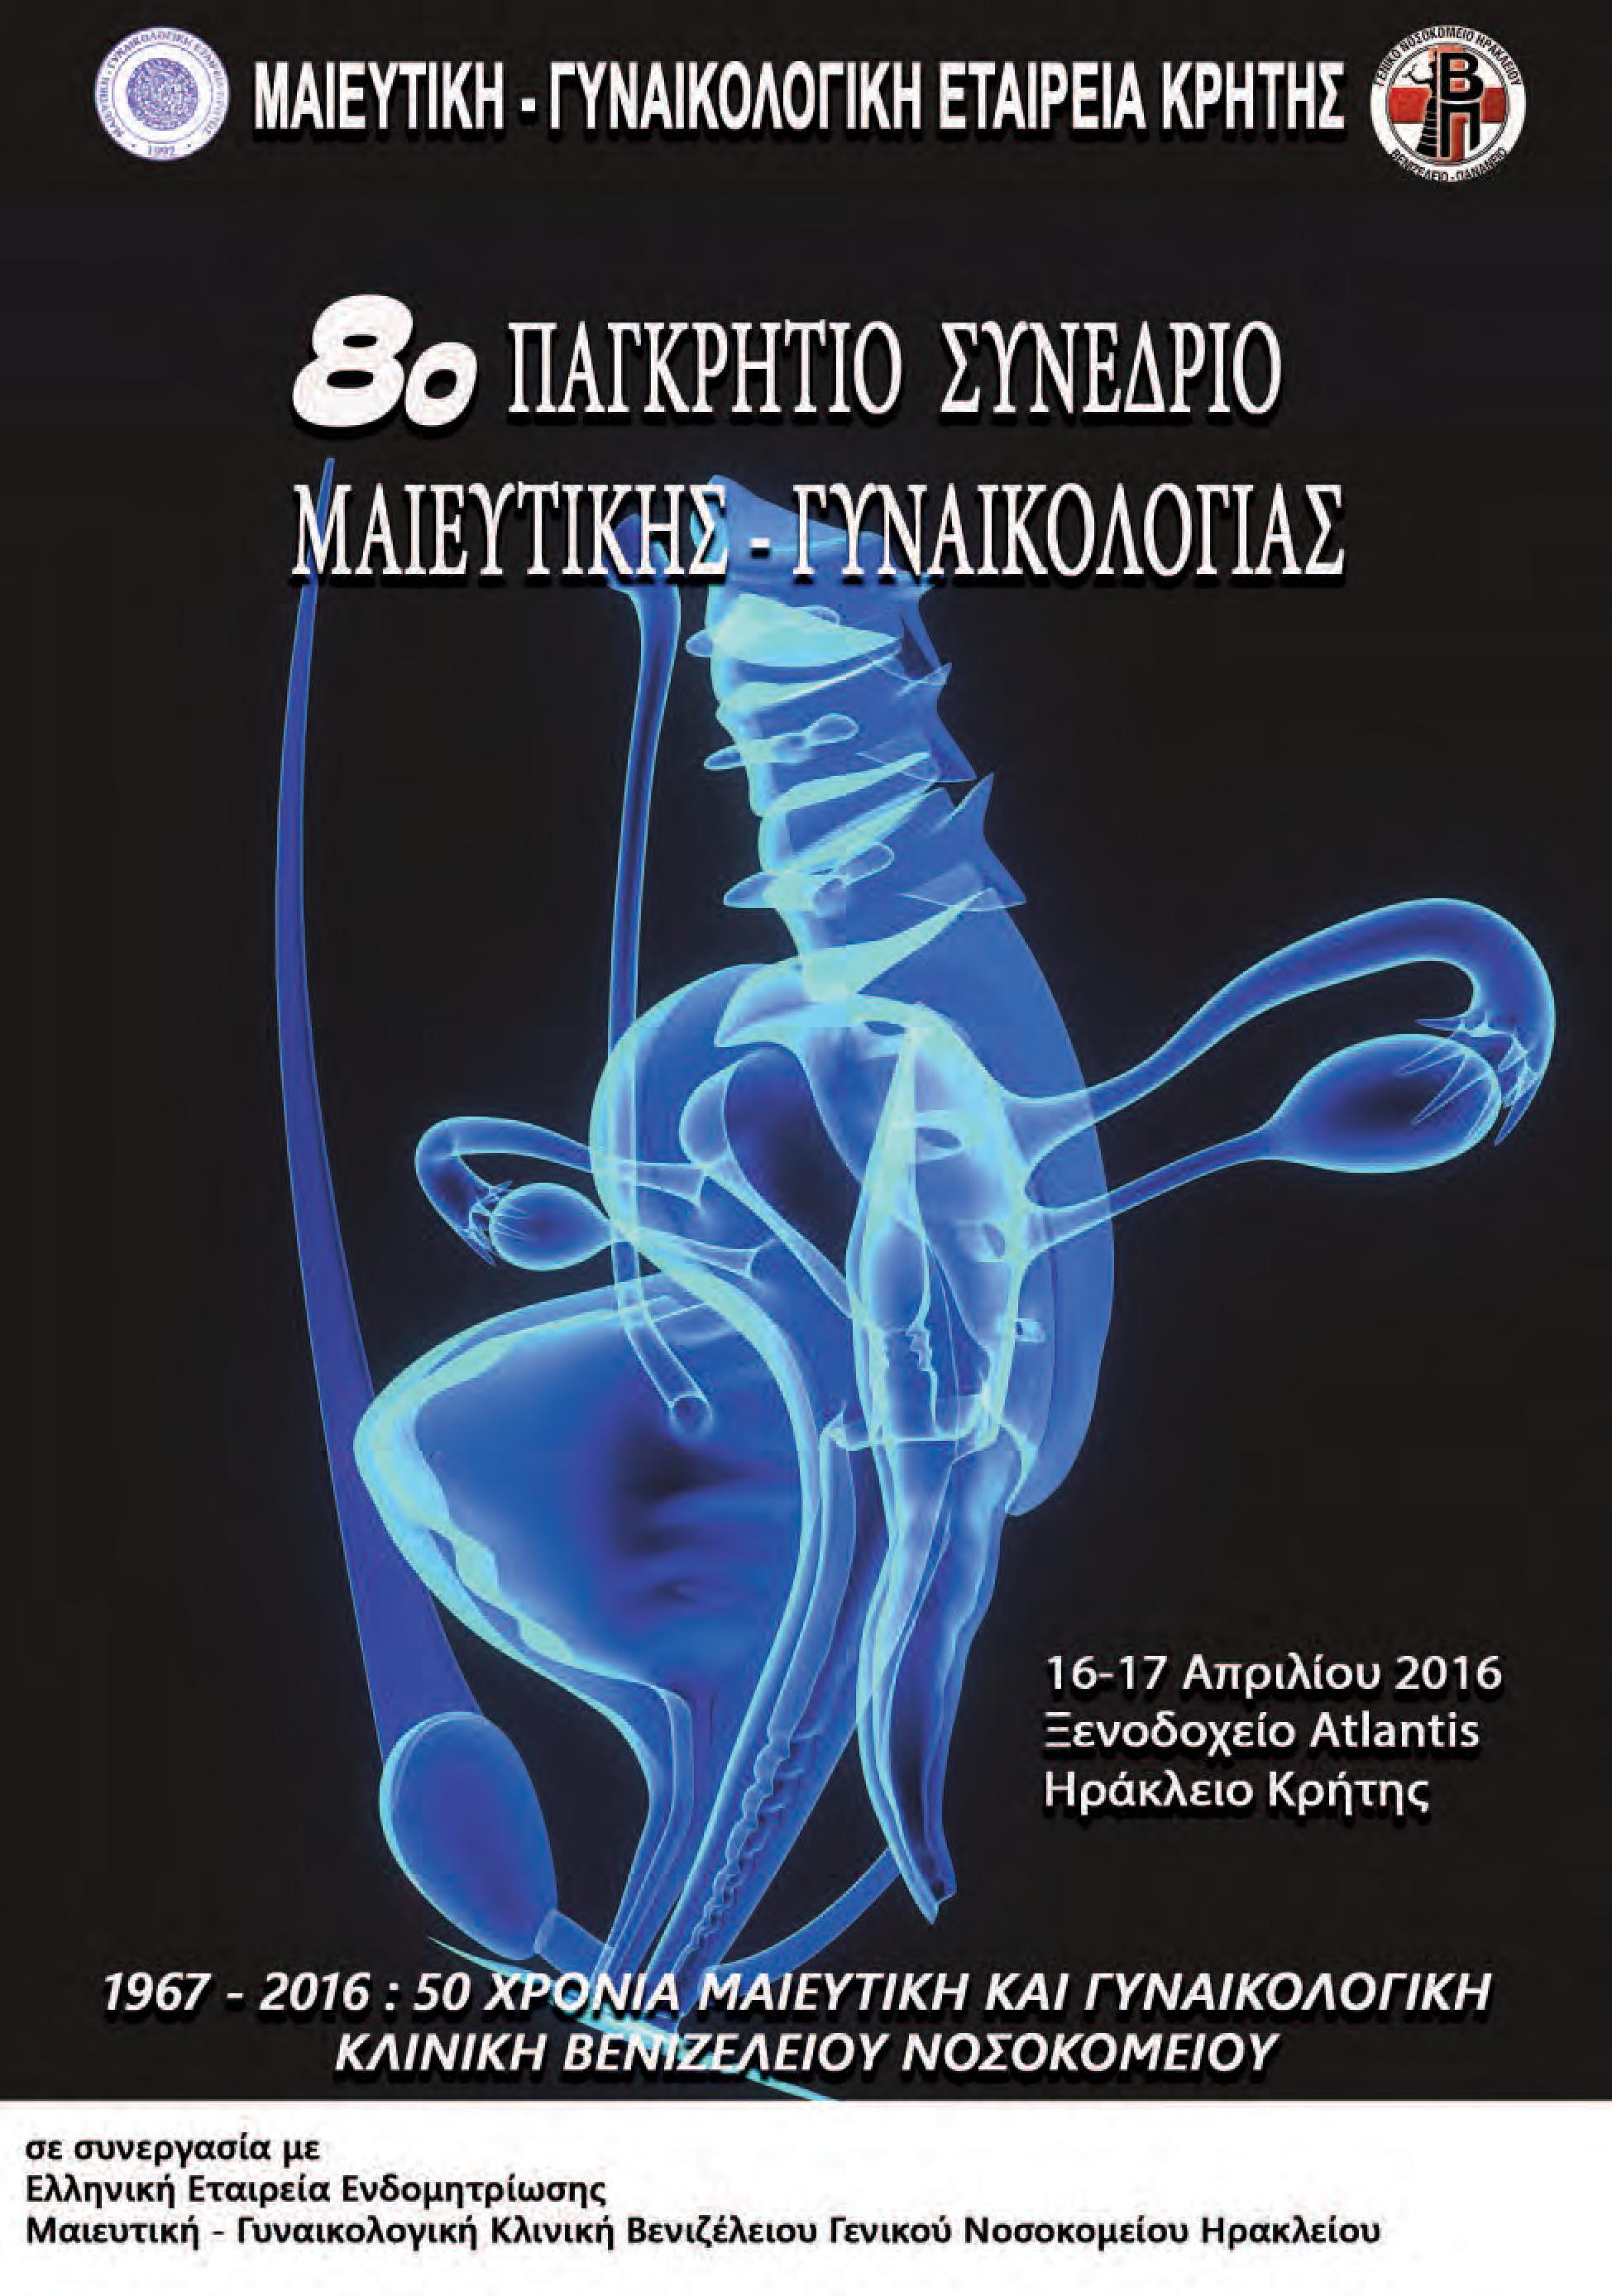 8th-Pankretan-Congress-Crete Fertility Centre-02